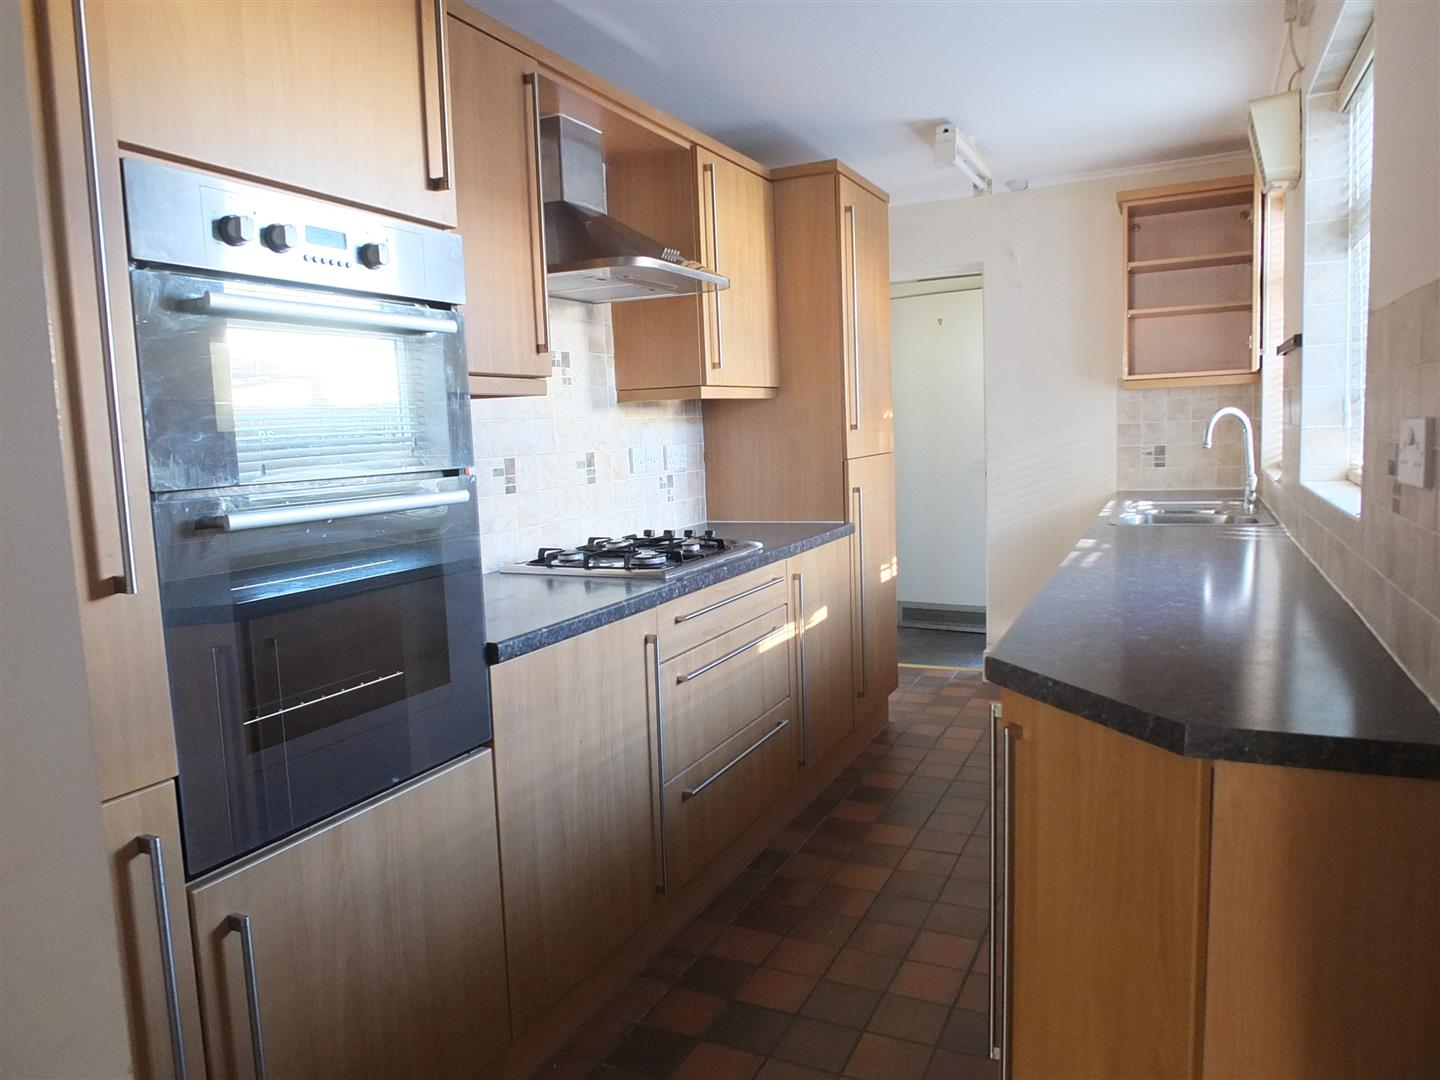 2 bed terraced house to rent in Sutton Bridge Spalding, PE12 9SX 3